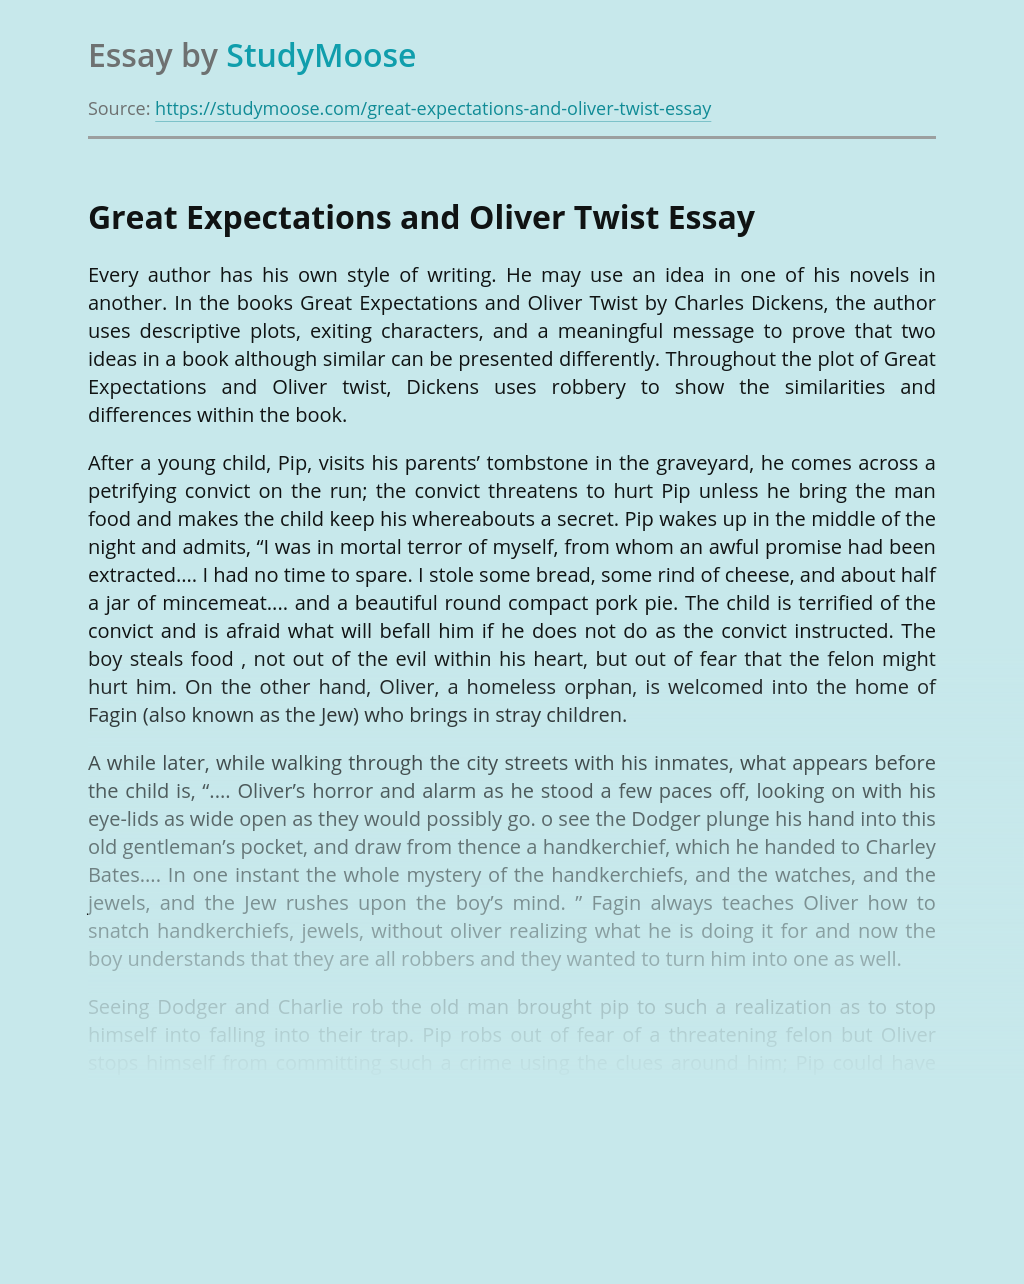 Great Expectations and Oliver Twist